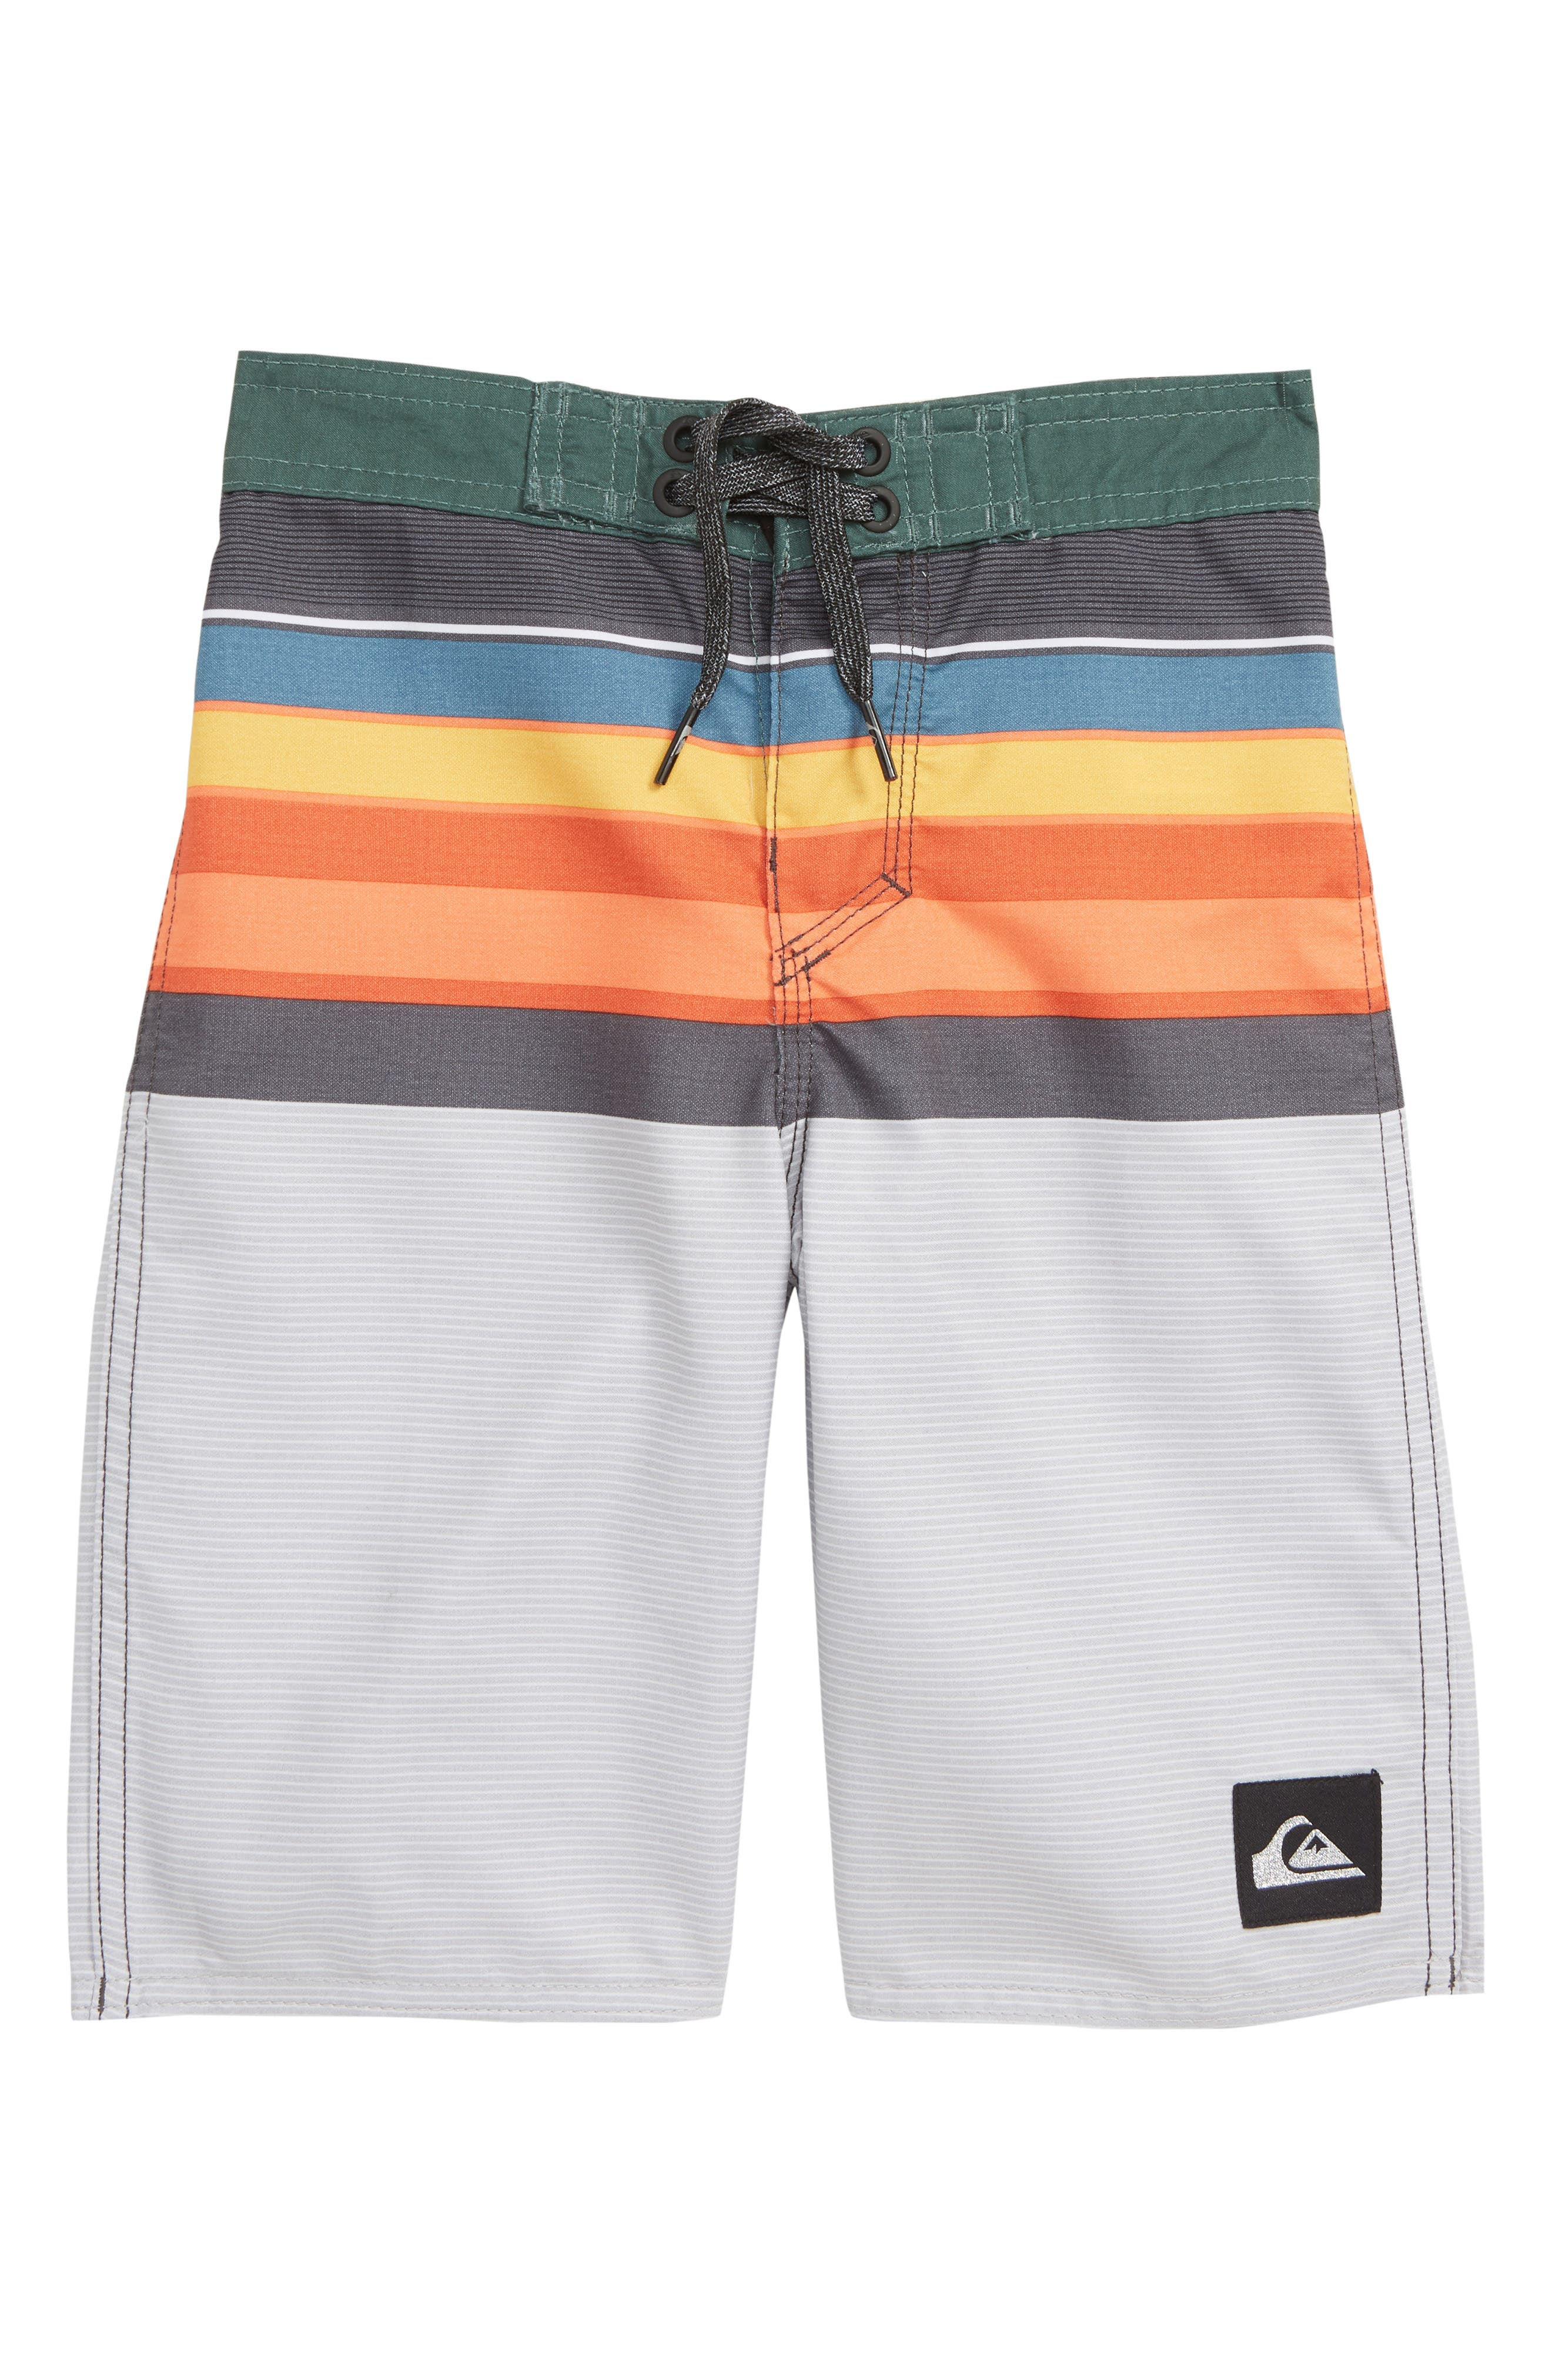 QUIKSILVER Everyday Swell Vision Board Shorts, Main, color, EBONY